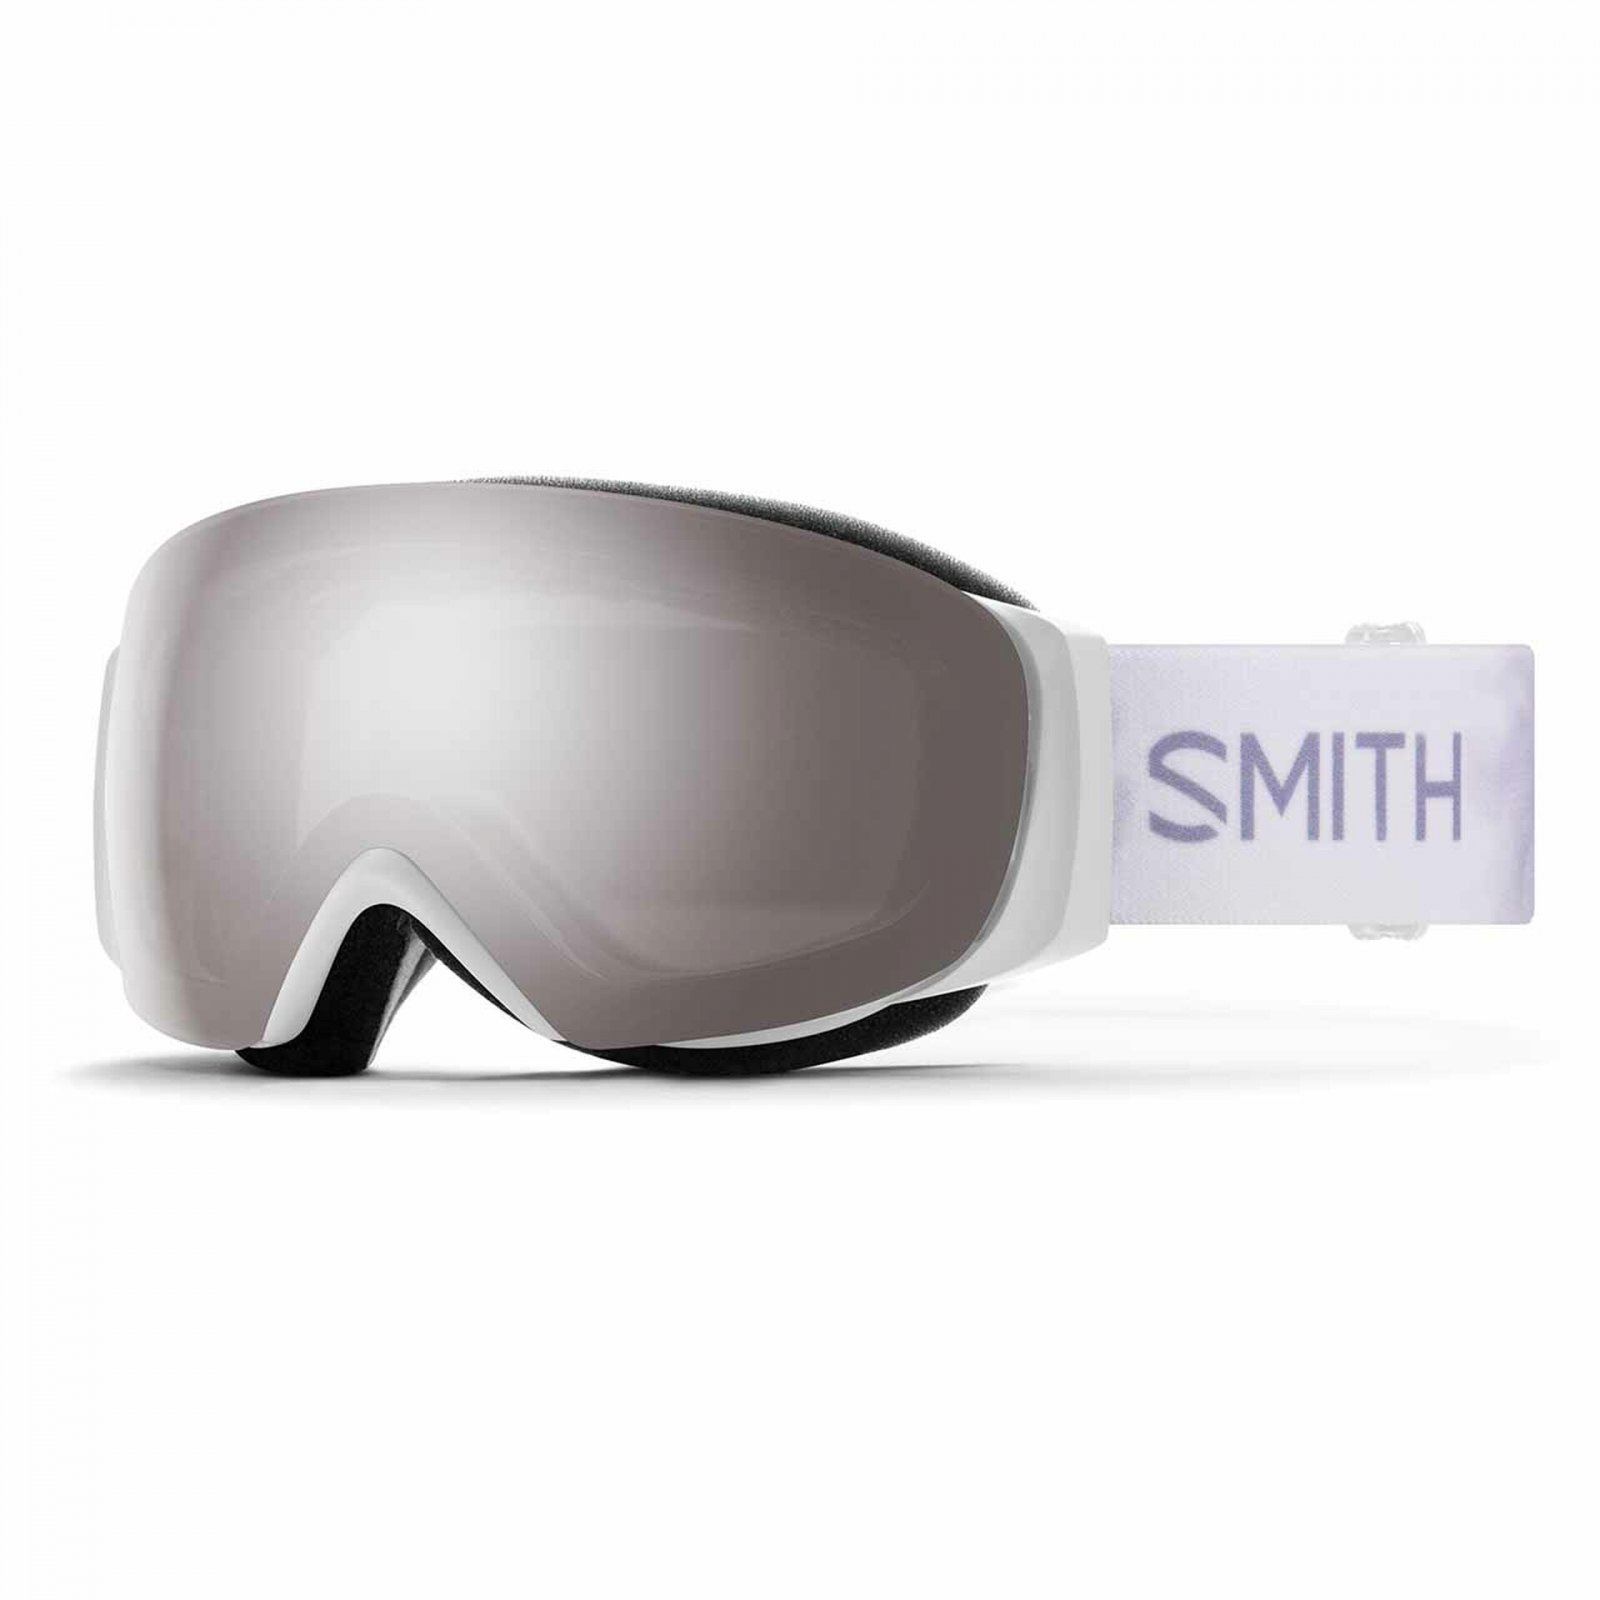 Smith I/O MAG S ASIAN FIT Snowboard Goggle (Multiple Color Options)